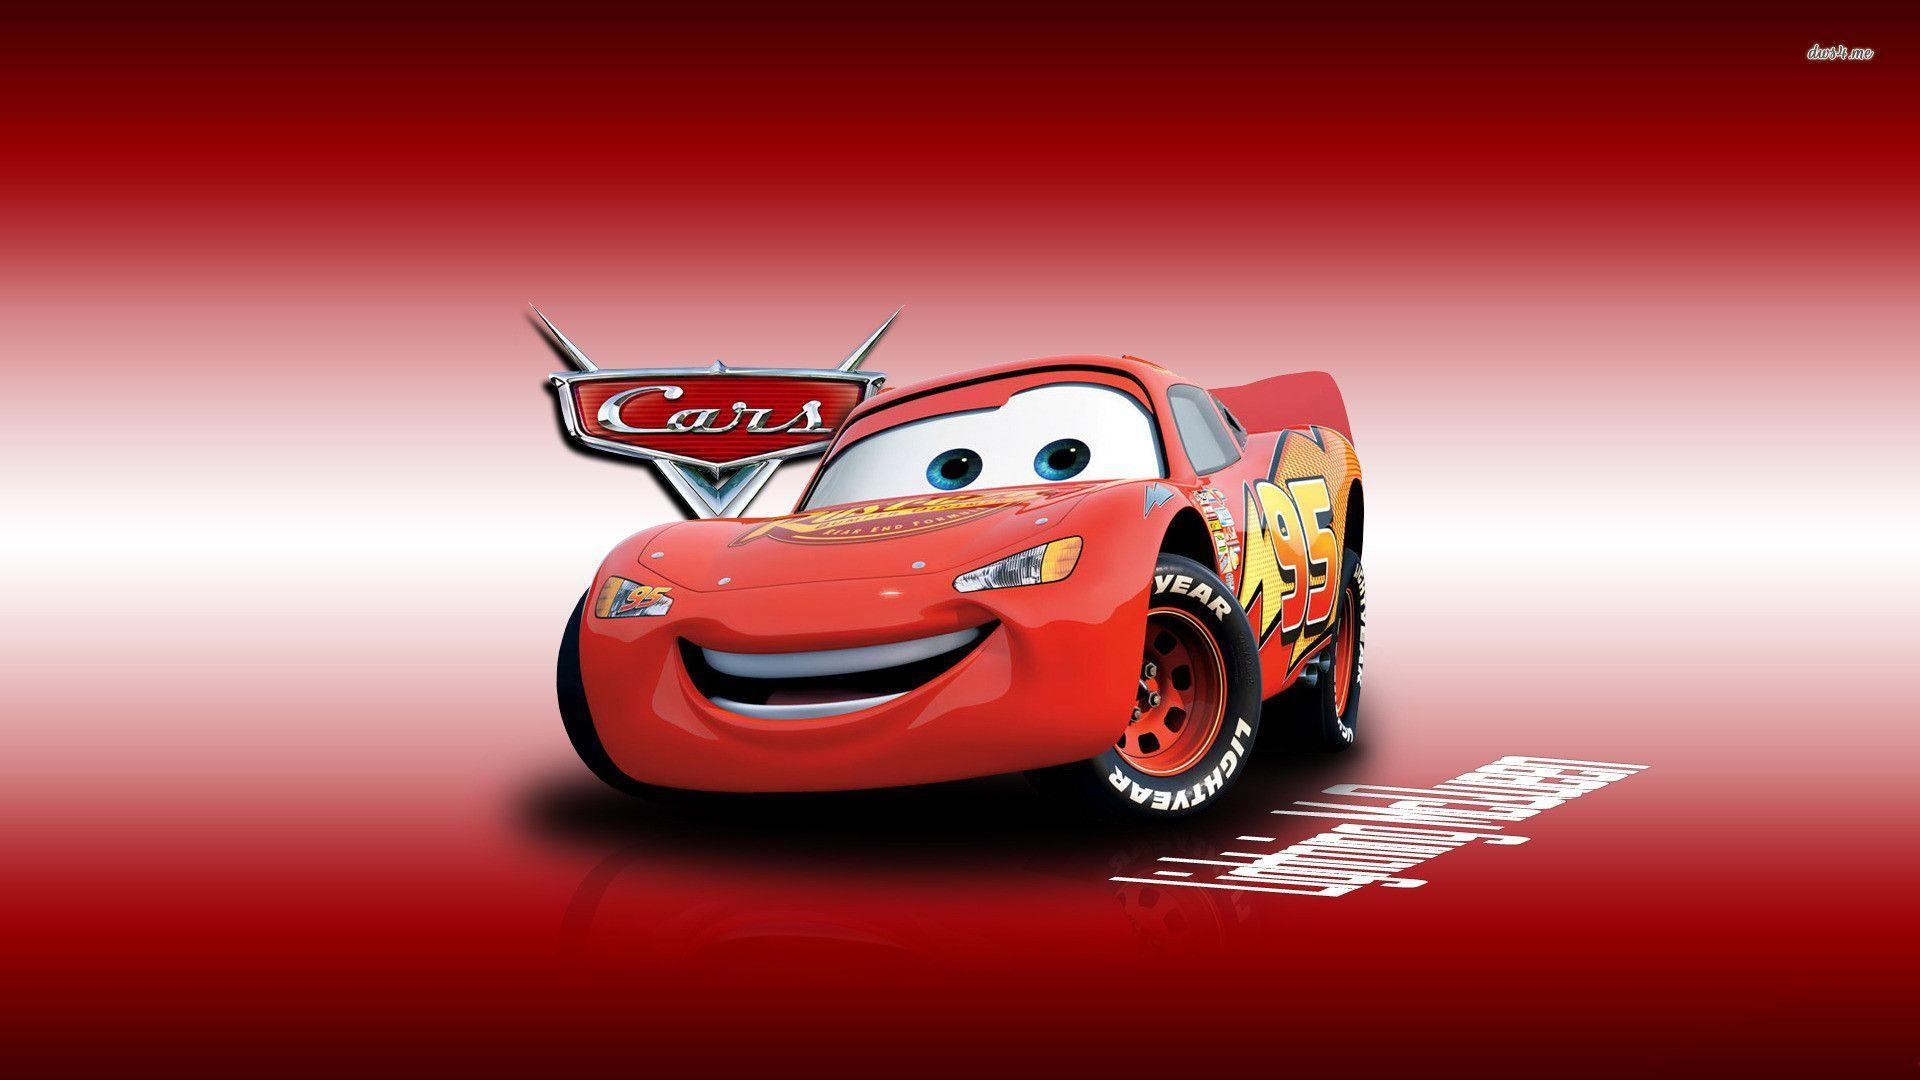 Lightning McQueen - Cars wallpaper - Cartoon wallpapers - #